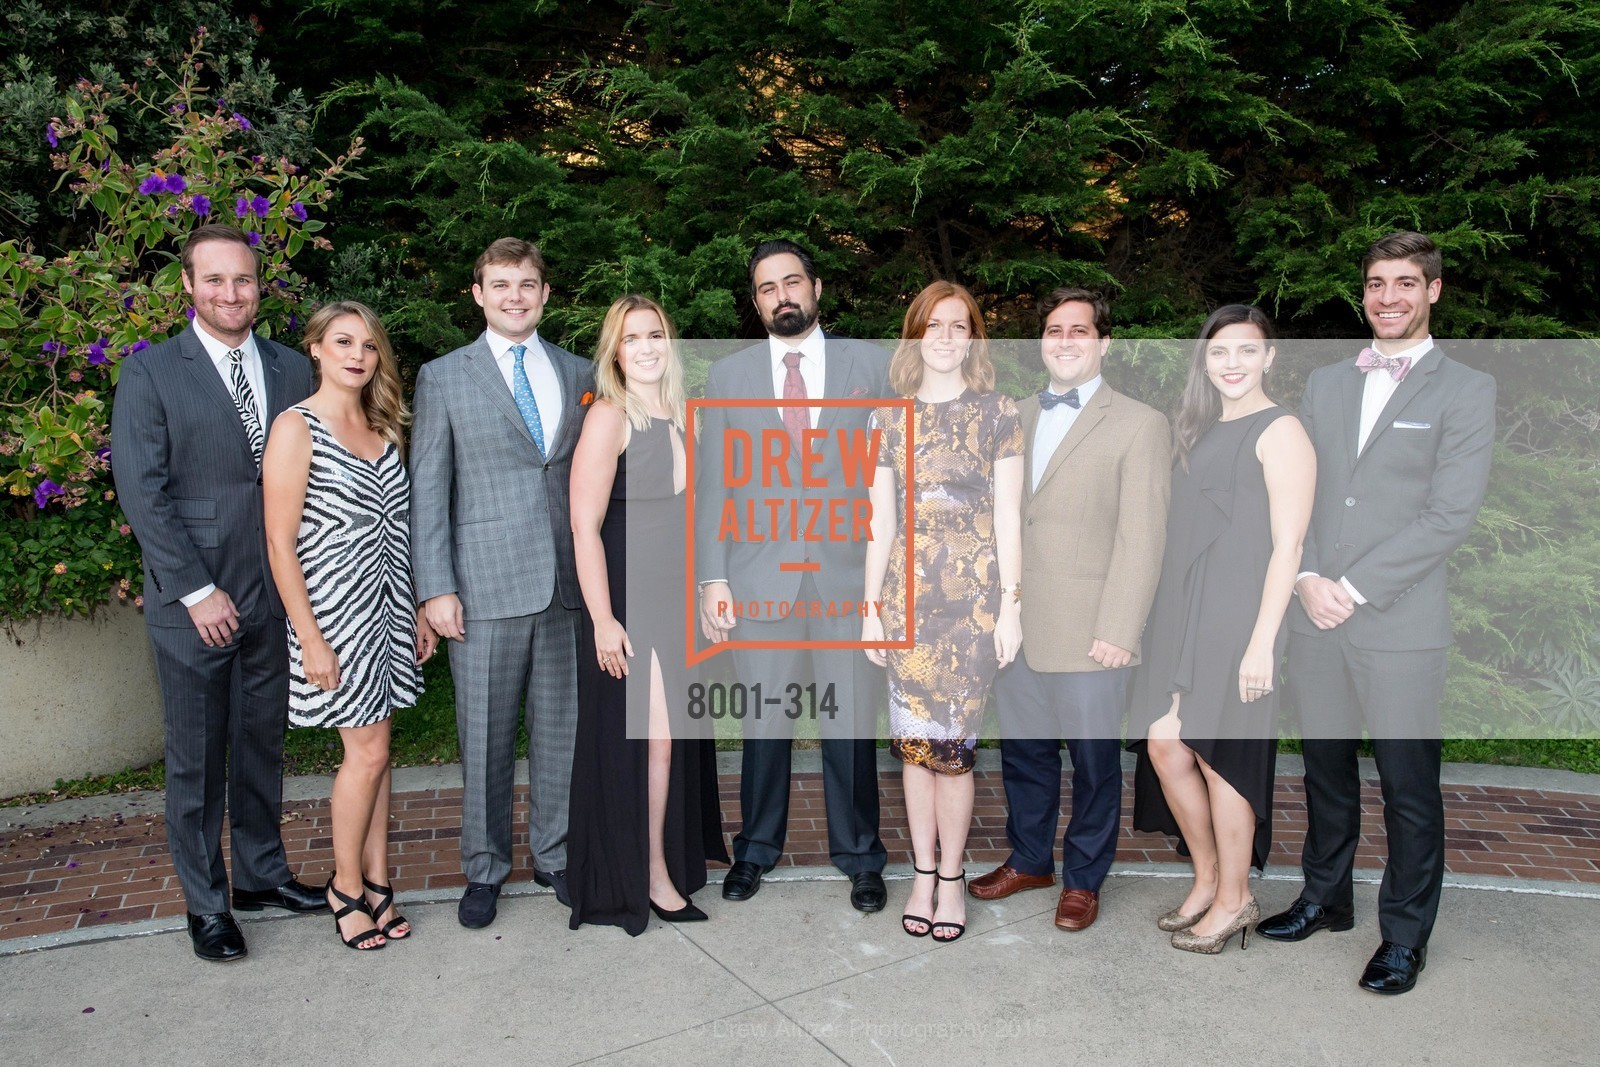 PJ Masterson, Erin Toth, Will Andereck, Michelle Sangiacomo, John Mutlow, Willa Moore, Clay Jameson, Aly Spradlin, Mike Ritter, San Francisco Zoo Fur Ball, San Francisco Zoo, September 25th, 2015